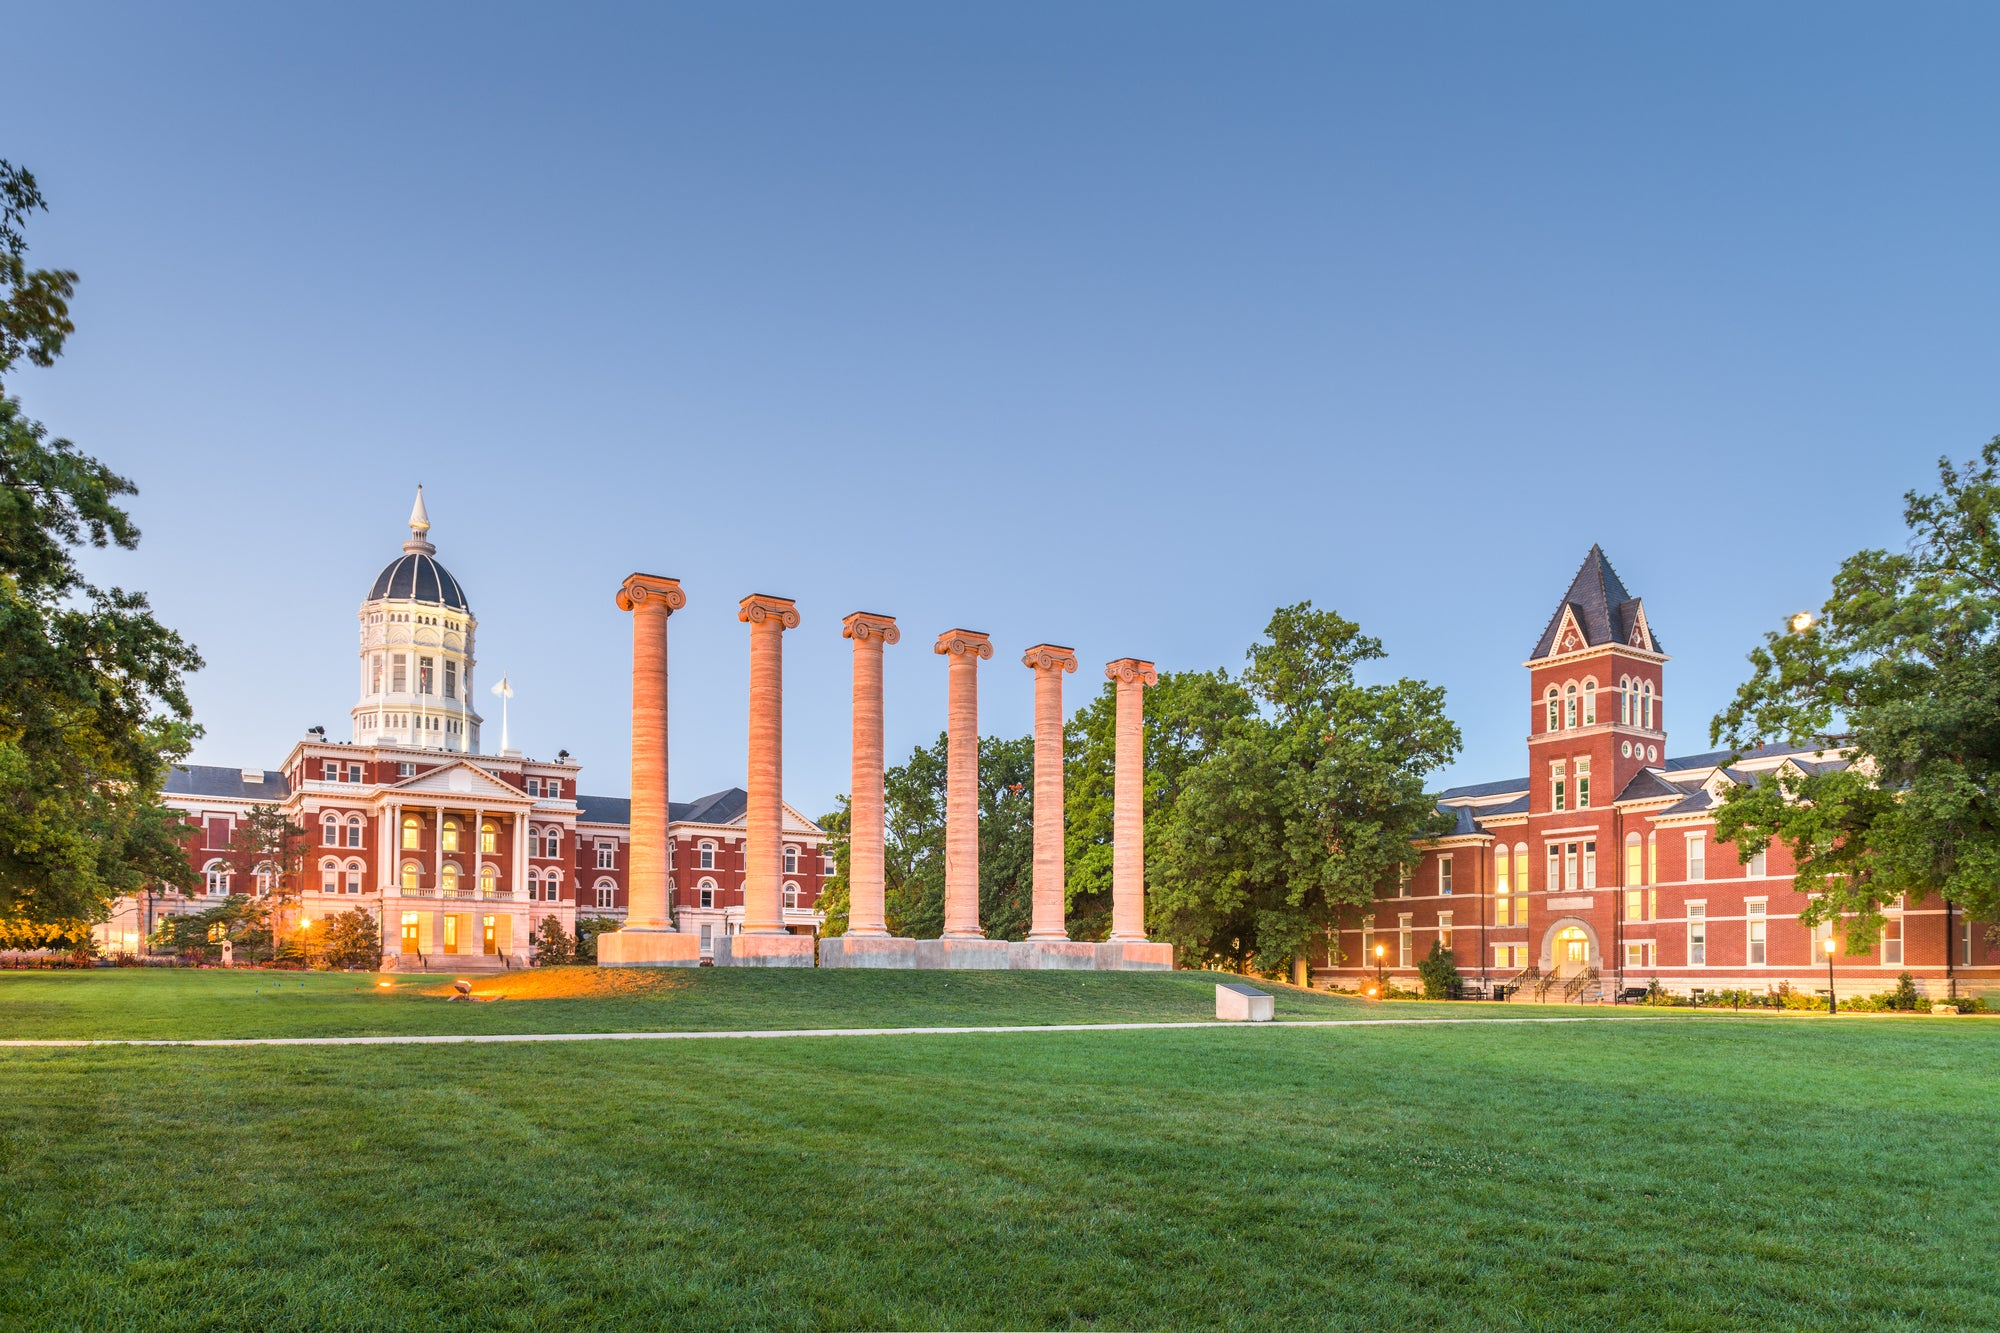 View of the University of Missouri green lit up